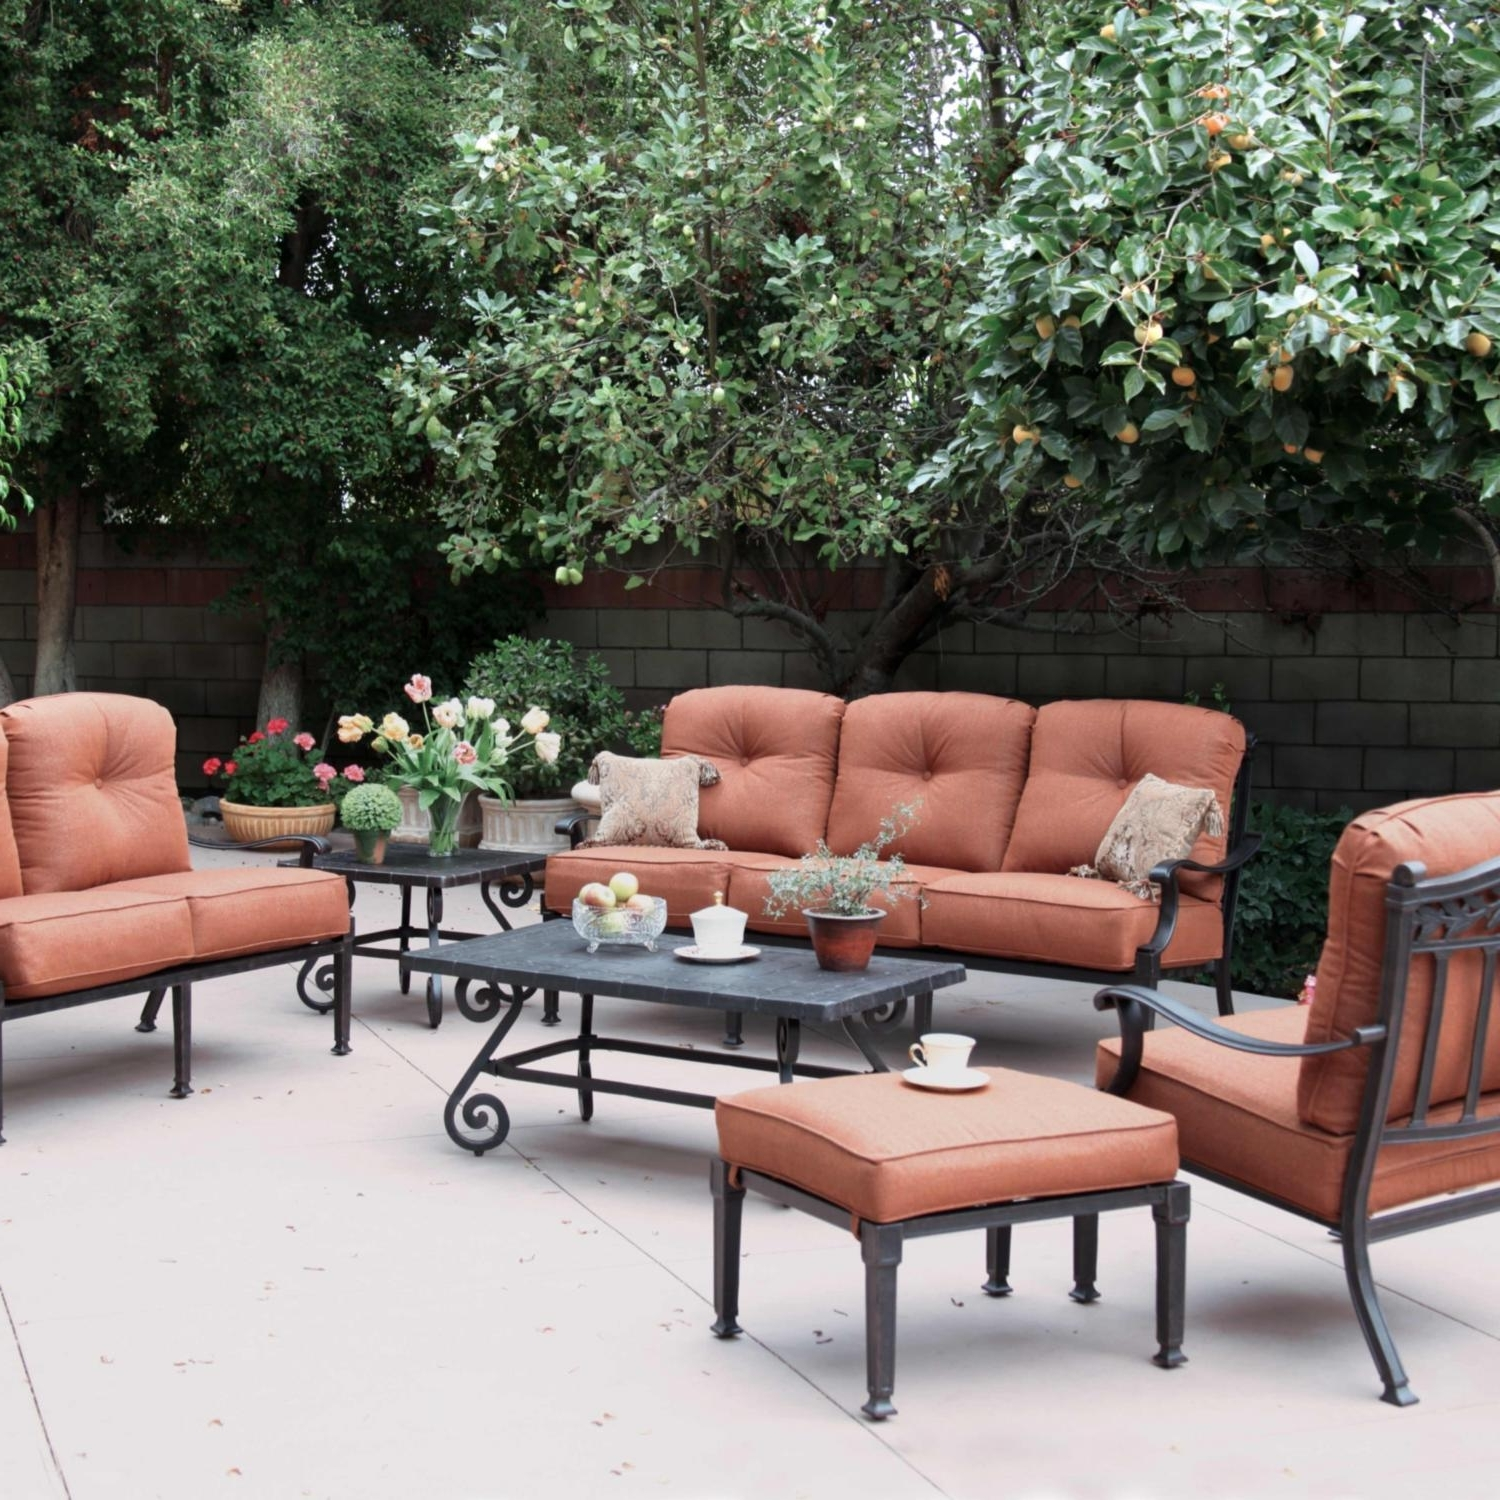 Patio Conversation Sets For Small Spaces In 2019 Metal Patio Conversation Sets For Small Spaces Cast Aluminum — The (View 4 of 20)